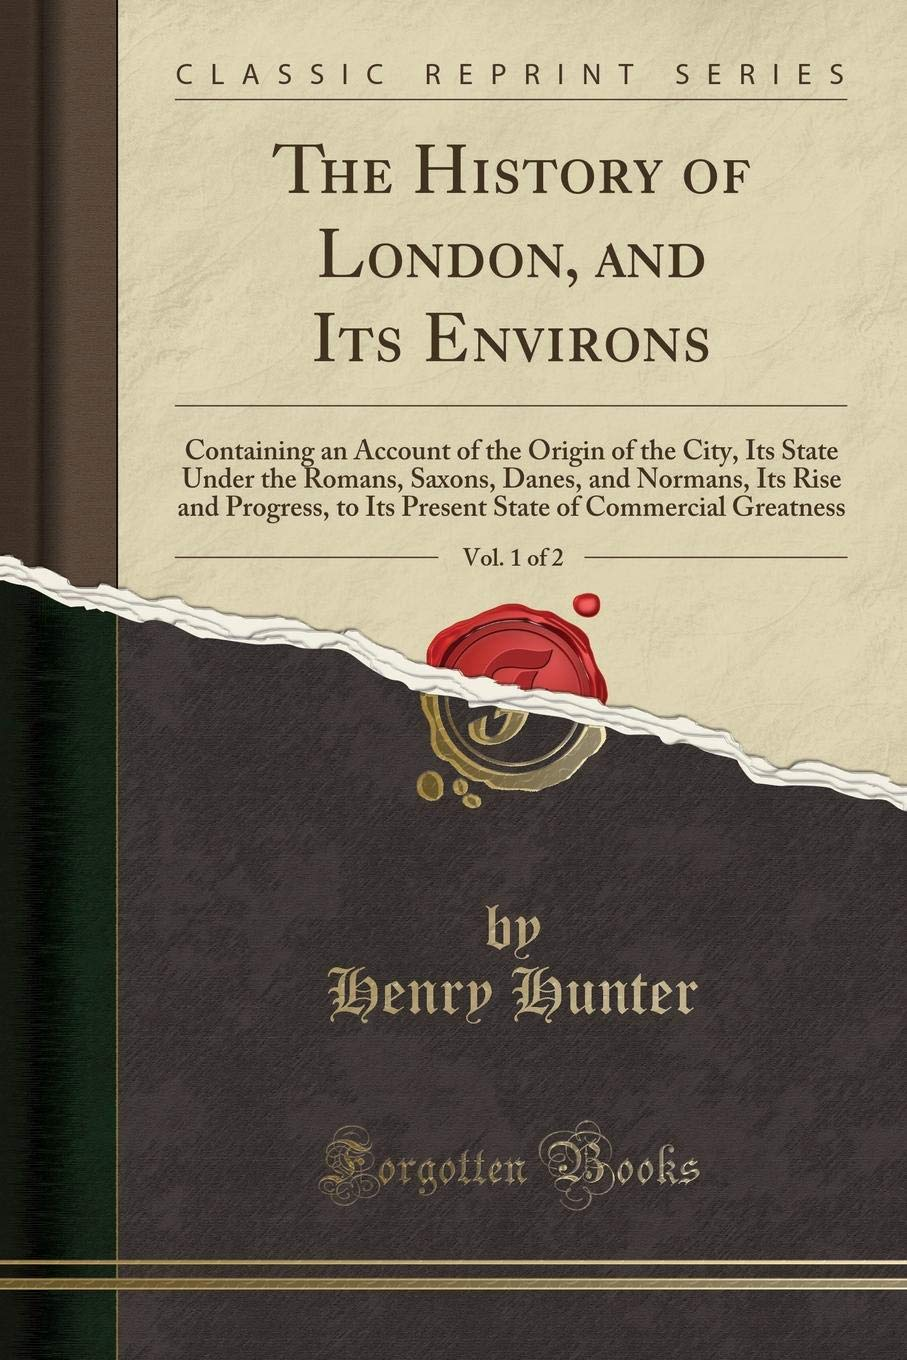 The History of London, and Its Environs, Vol. 1 of 2: Containing an Account of the Origin of the City, Its State Under the Romans, Saxons, Danes, and ... of Commercial Greatness (Classic Reprint) ebook